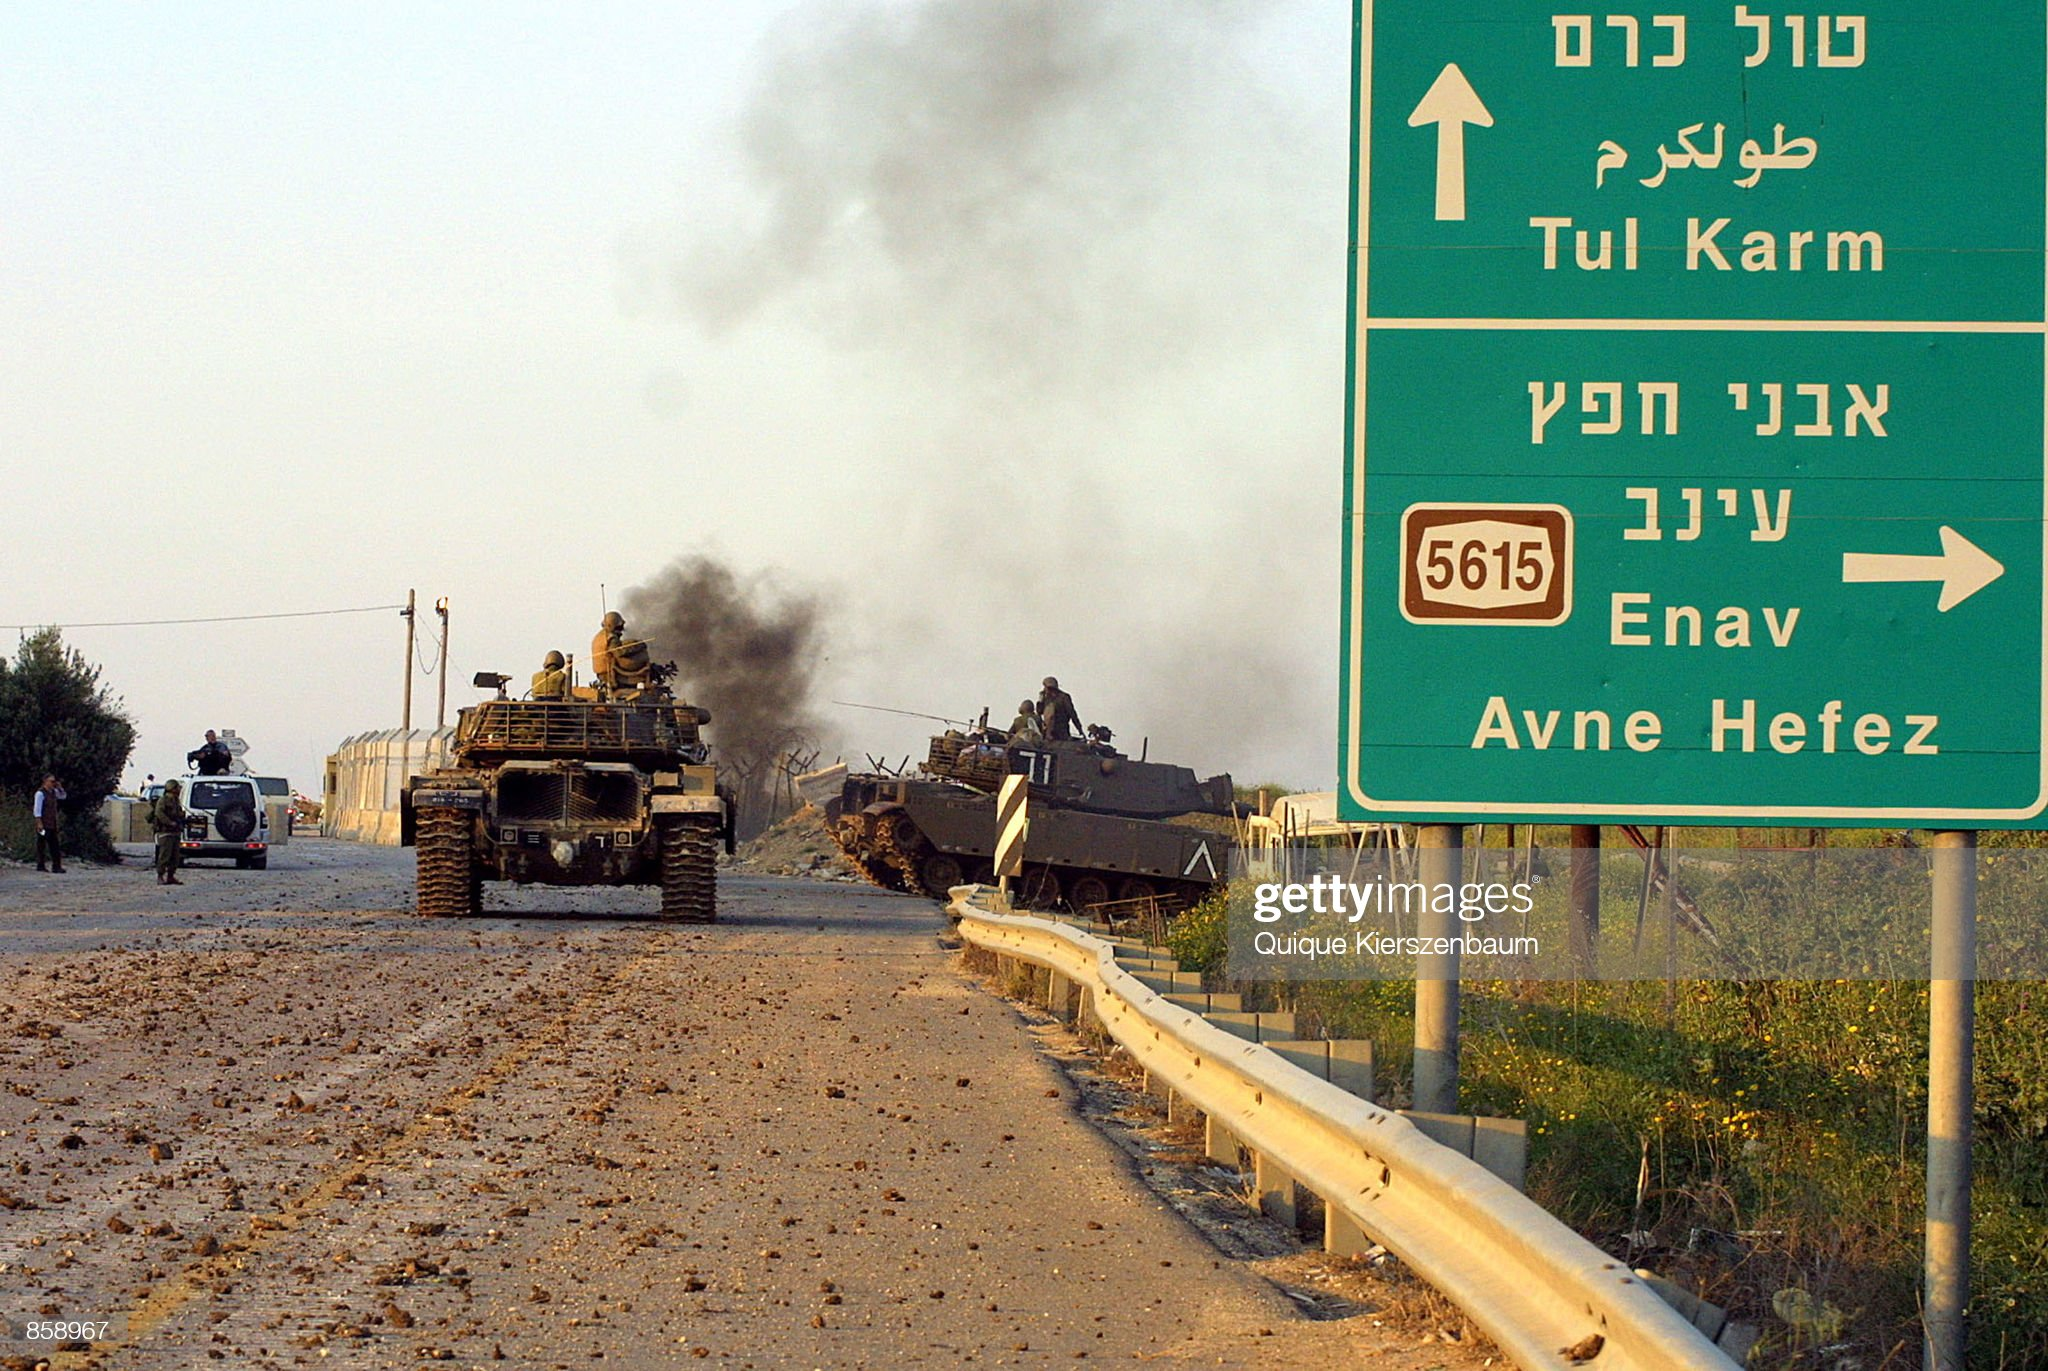 https://media.gettyimages.com/photos/israeli-troops-enter-the-outskirts-of-the-palestinian-town-of-in-picture-id858967?s=2048x2048